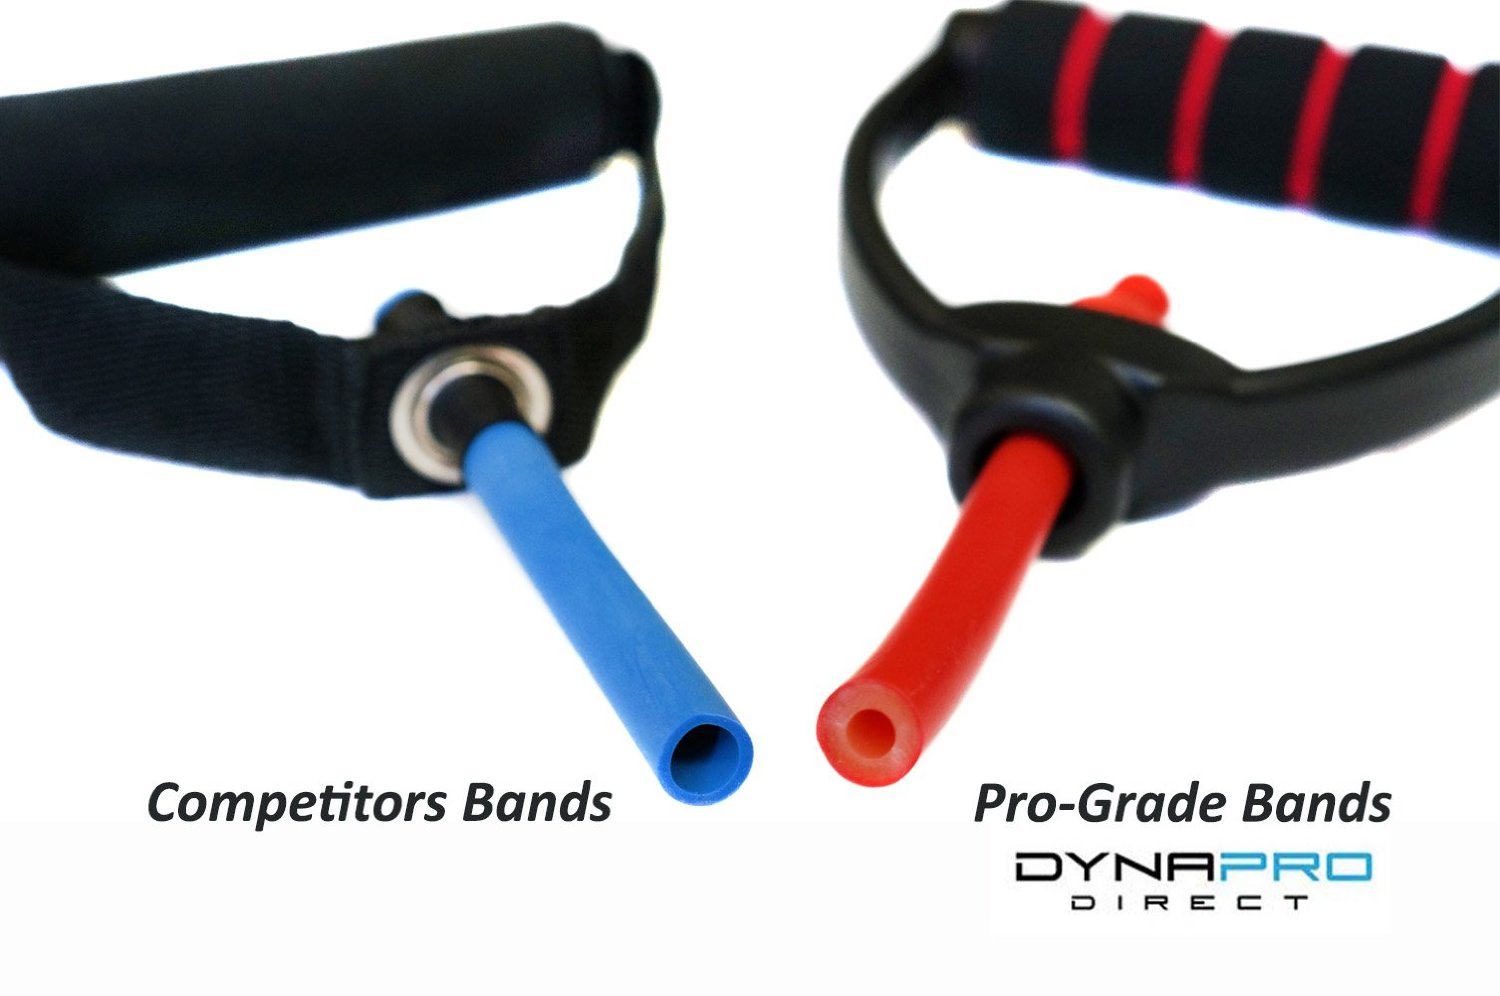 ProGrade resistance bands at DynaPro Direct